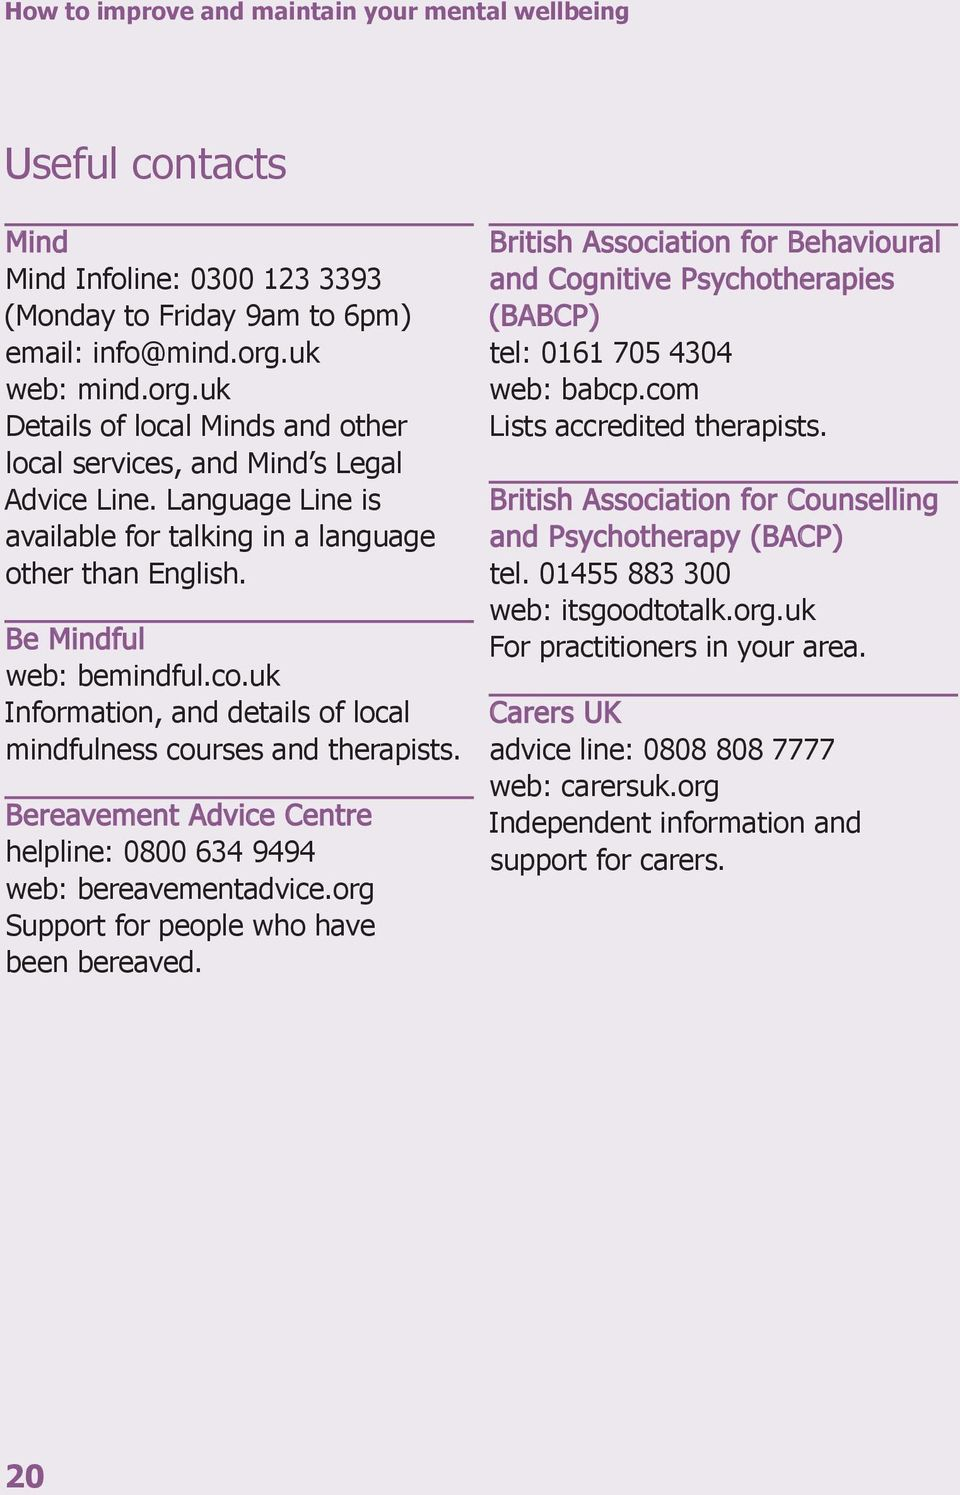 co.uk Information, and details of local mindfulness courses and therapists. Bereavement Advice Centre helpline: 0800 634 9494 web: bereavementadvice.org Support for people who have been bereaved.